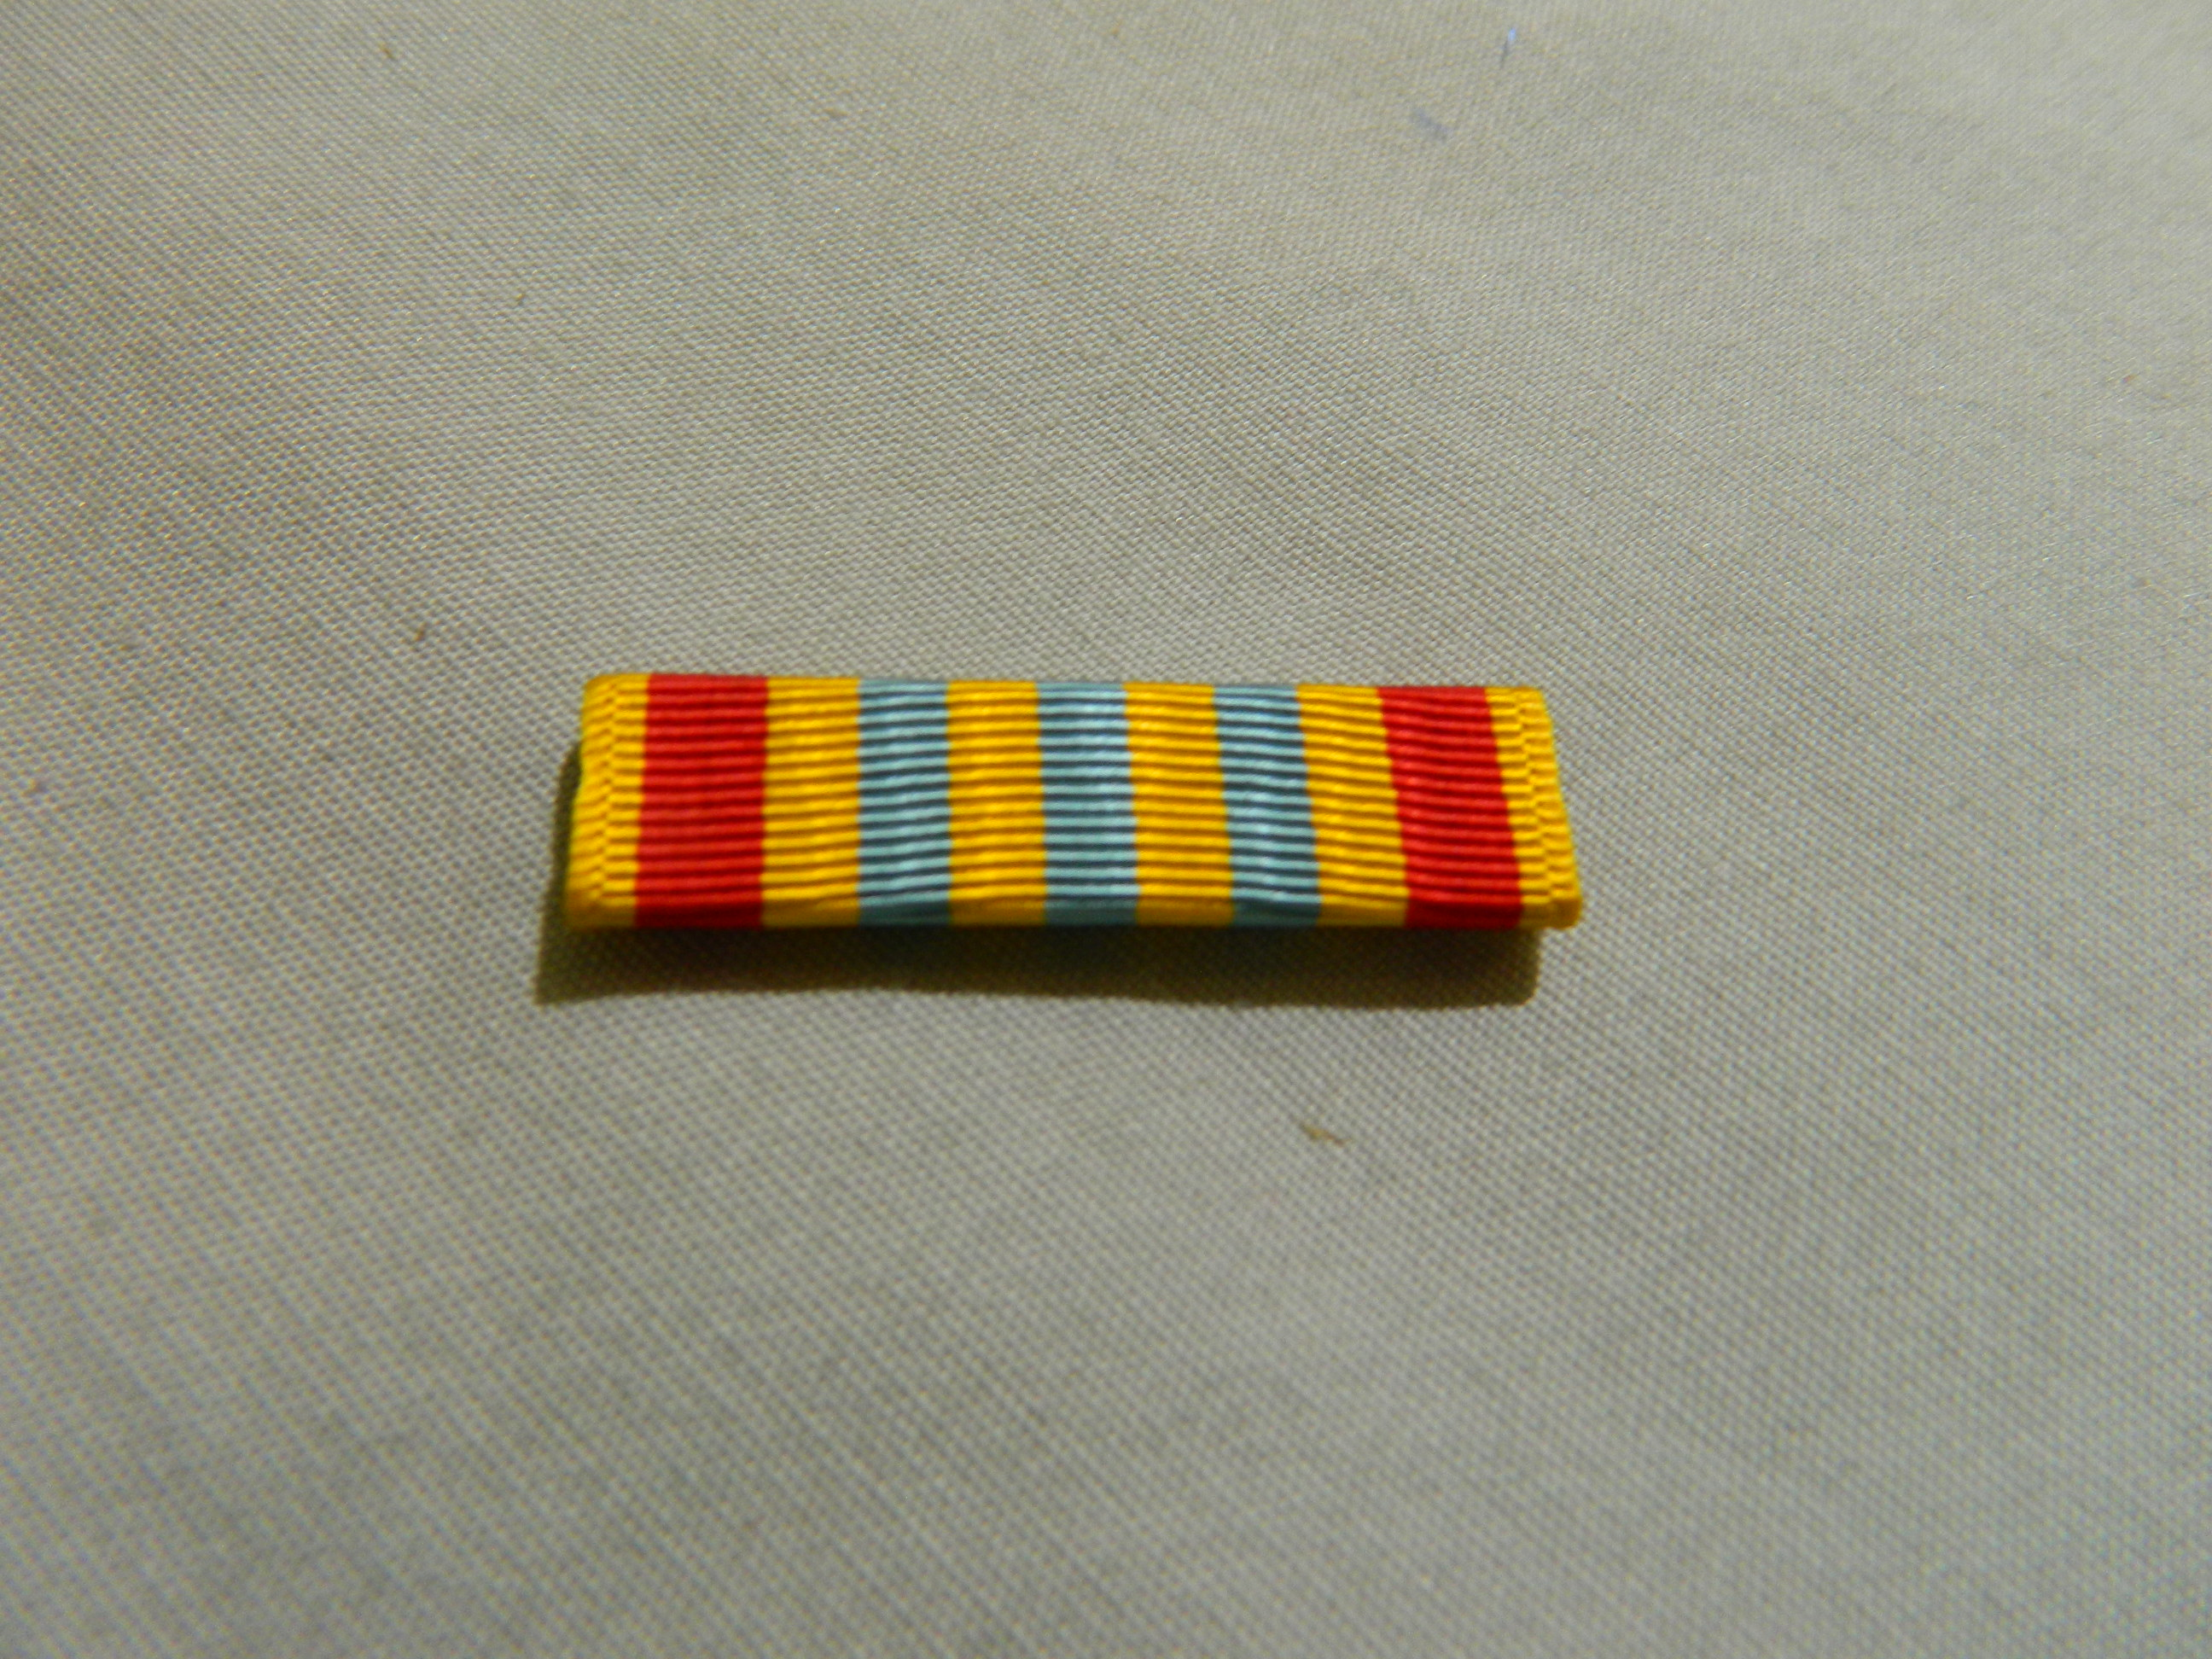 Ribbon: Vietnam Armed Forces Honor Medal